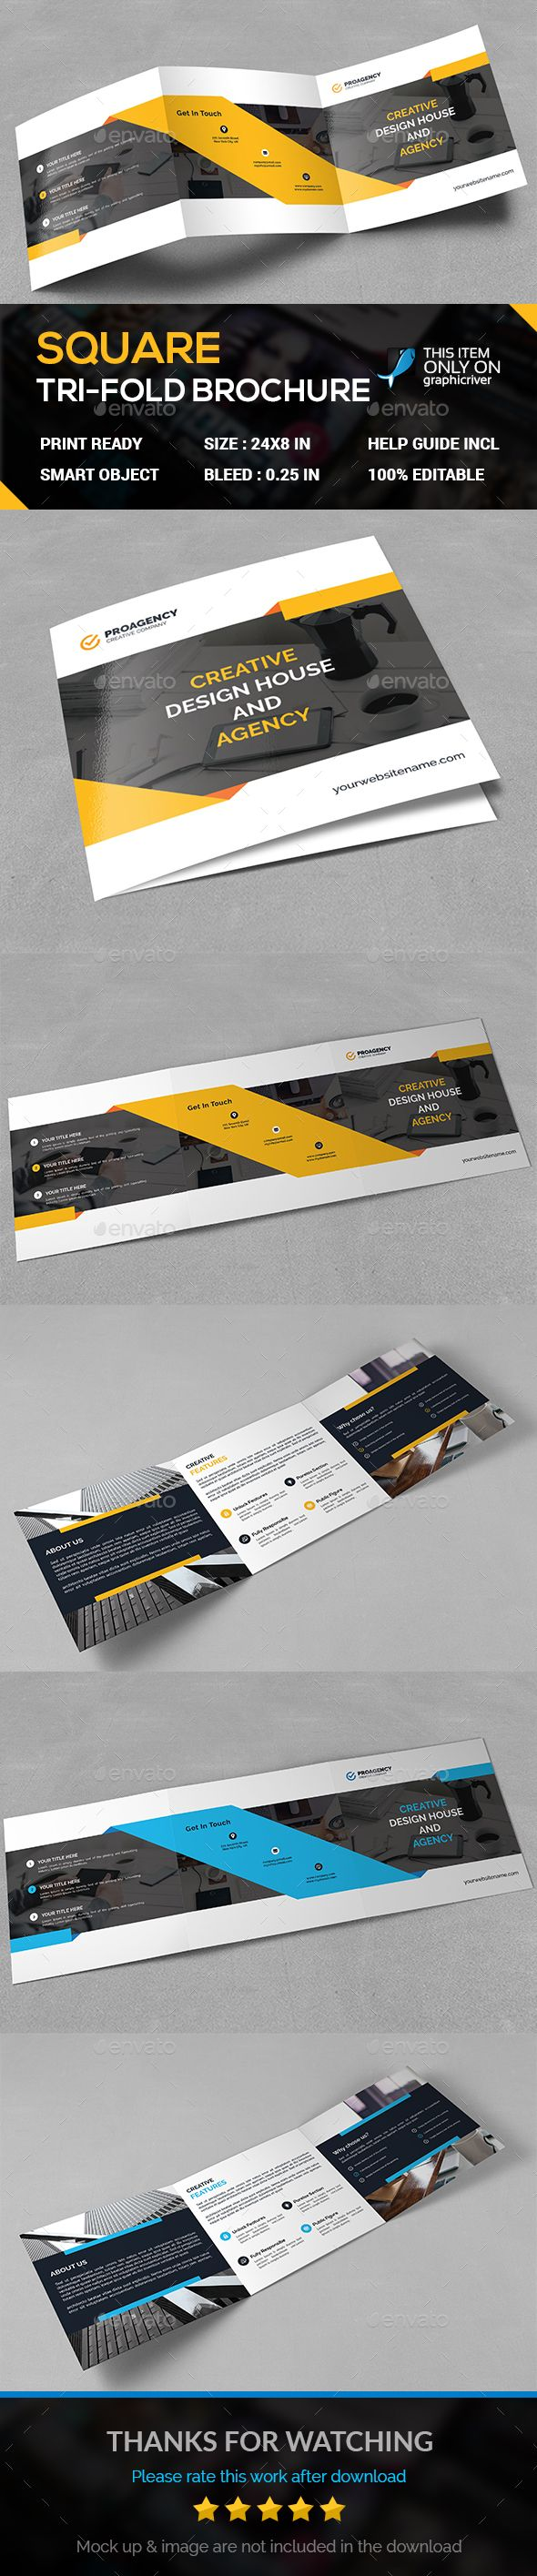 Square Tri-Fold Brochure Template PSD. Download here: http://graphicriver.net/item/square-trifold/15827340?ref=ksioks